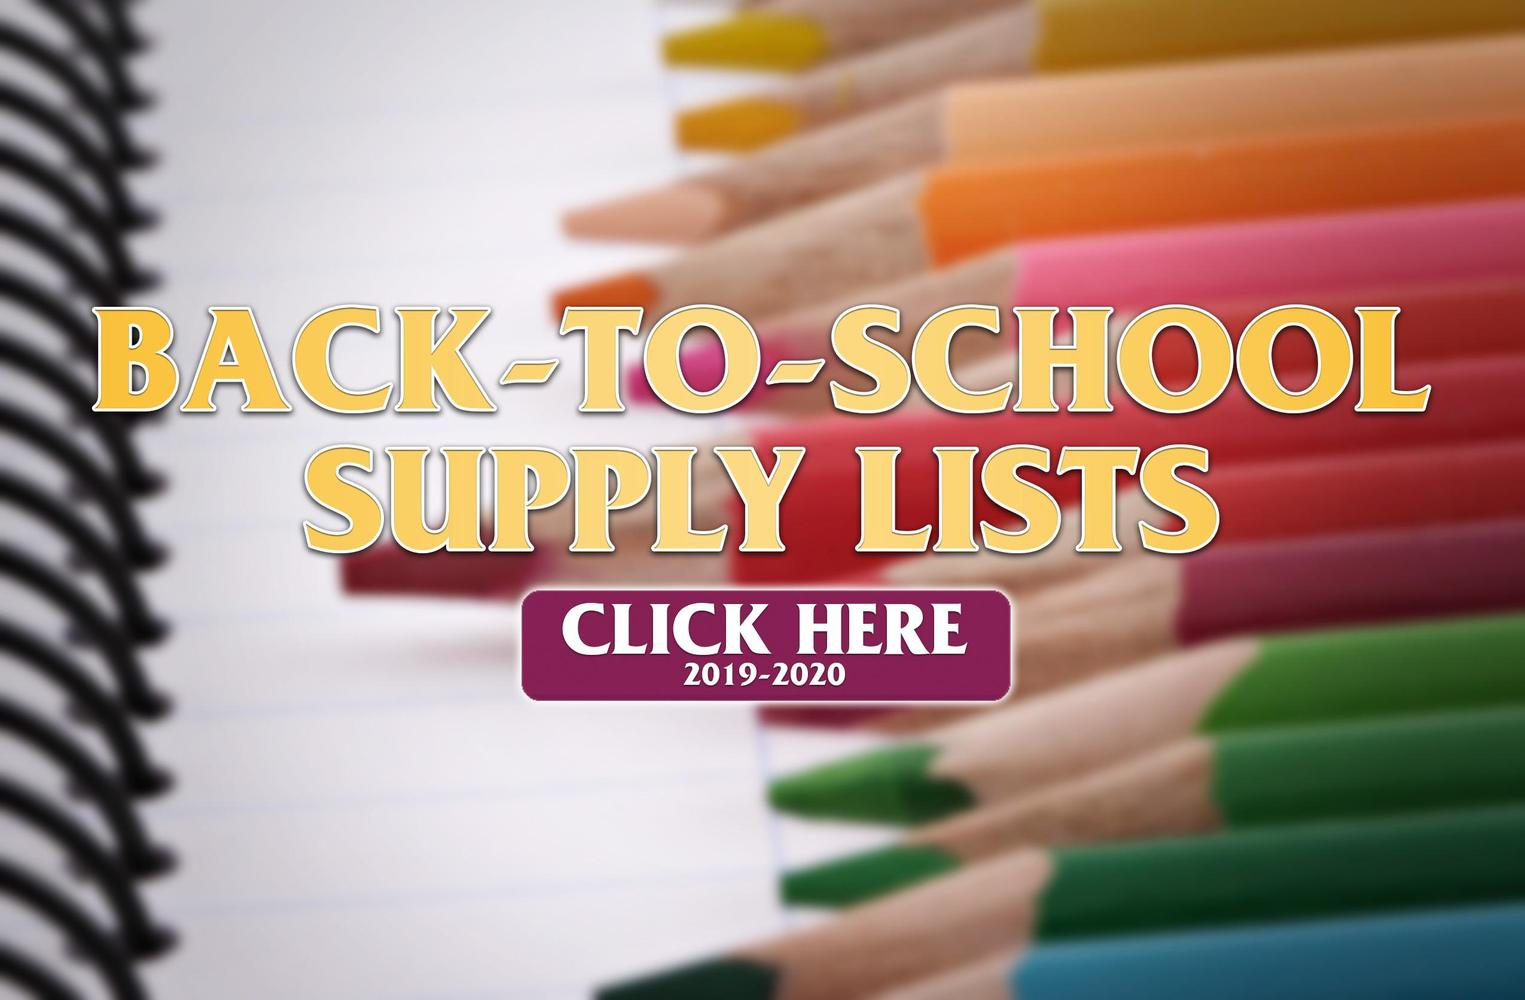 Back-to-School Supply Lists (2019-2020)